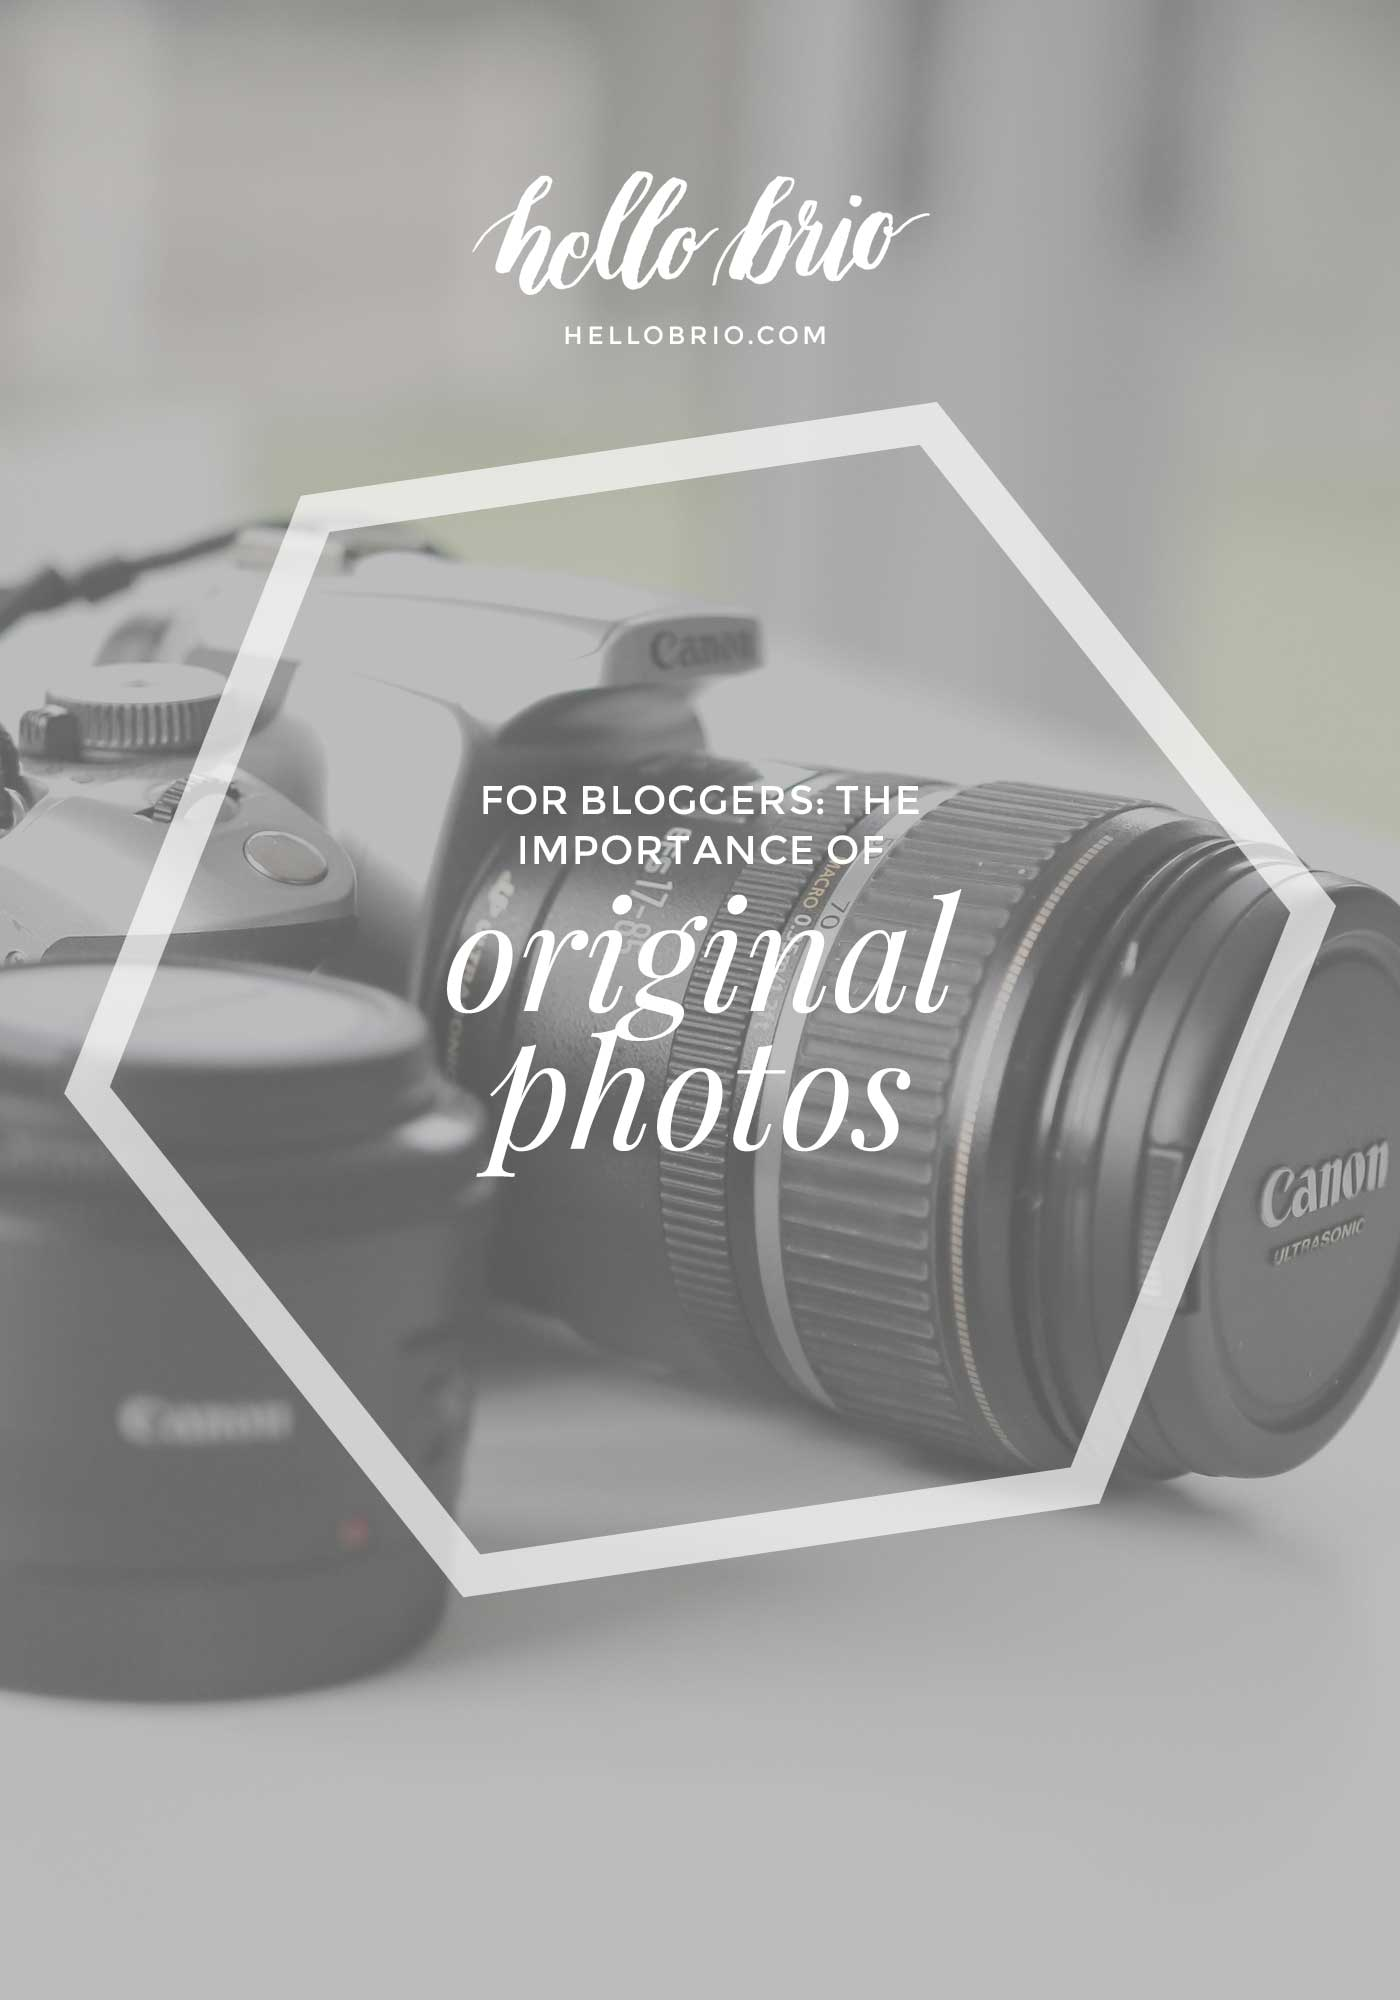 The importance of original photos for blogging